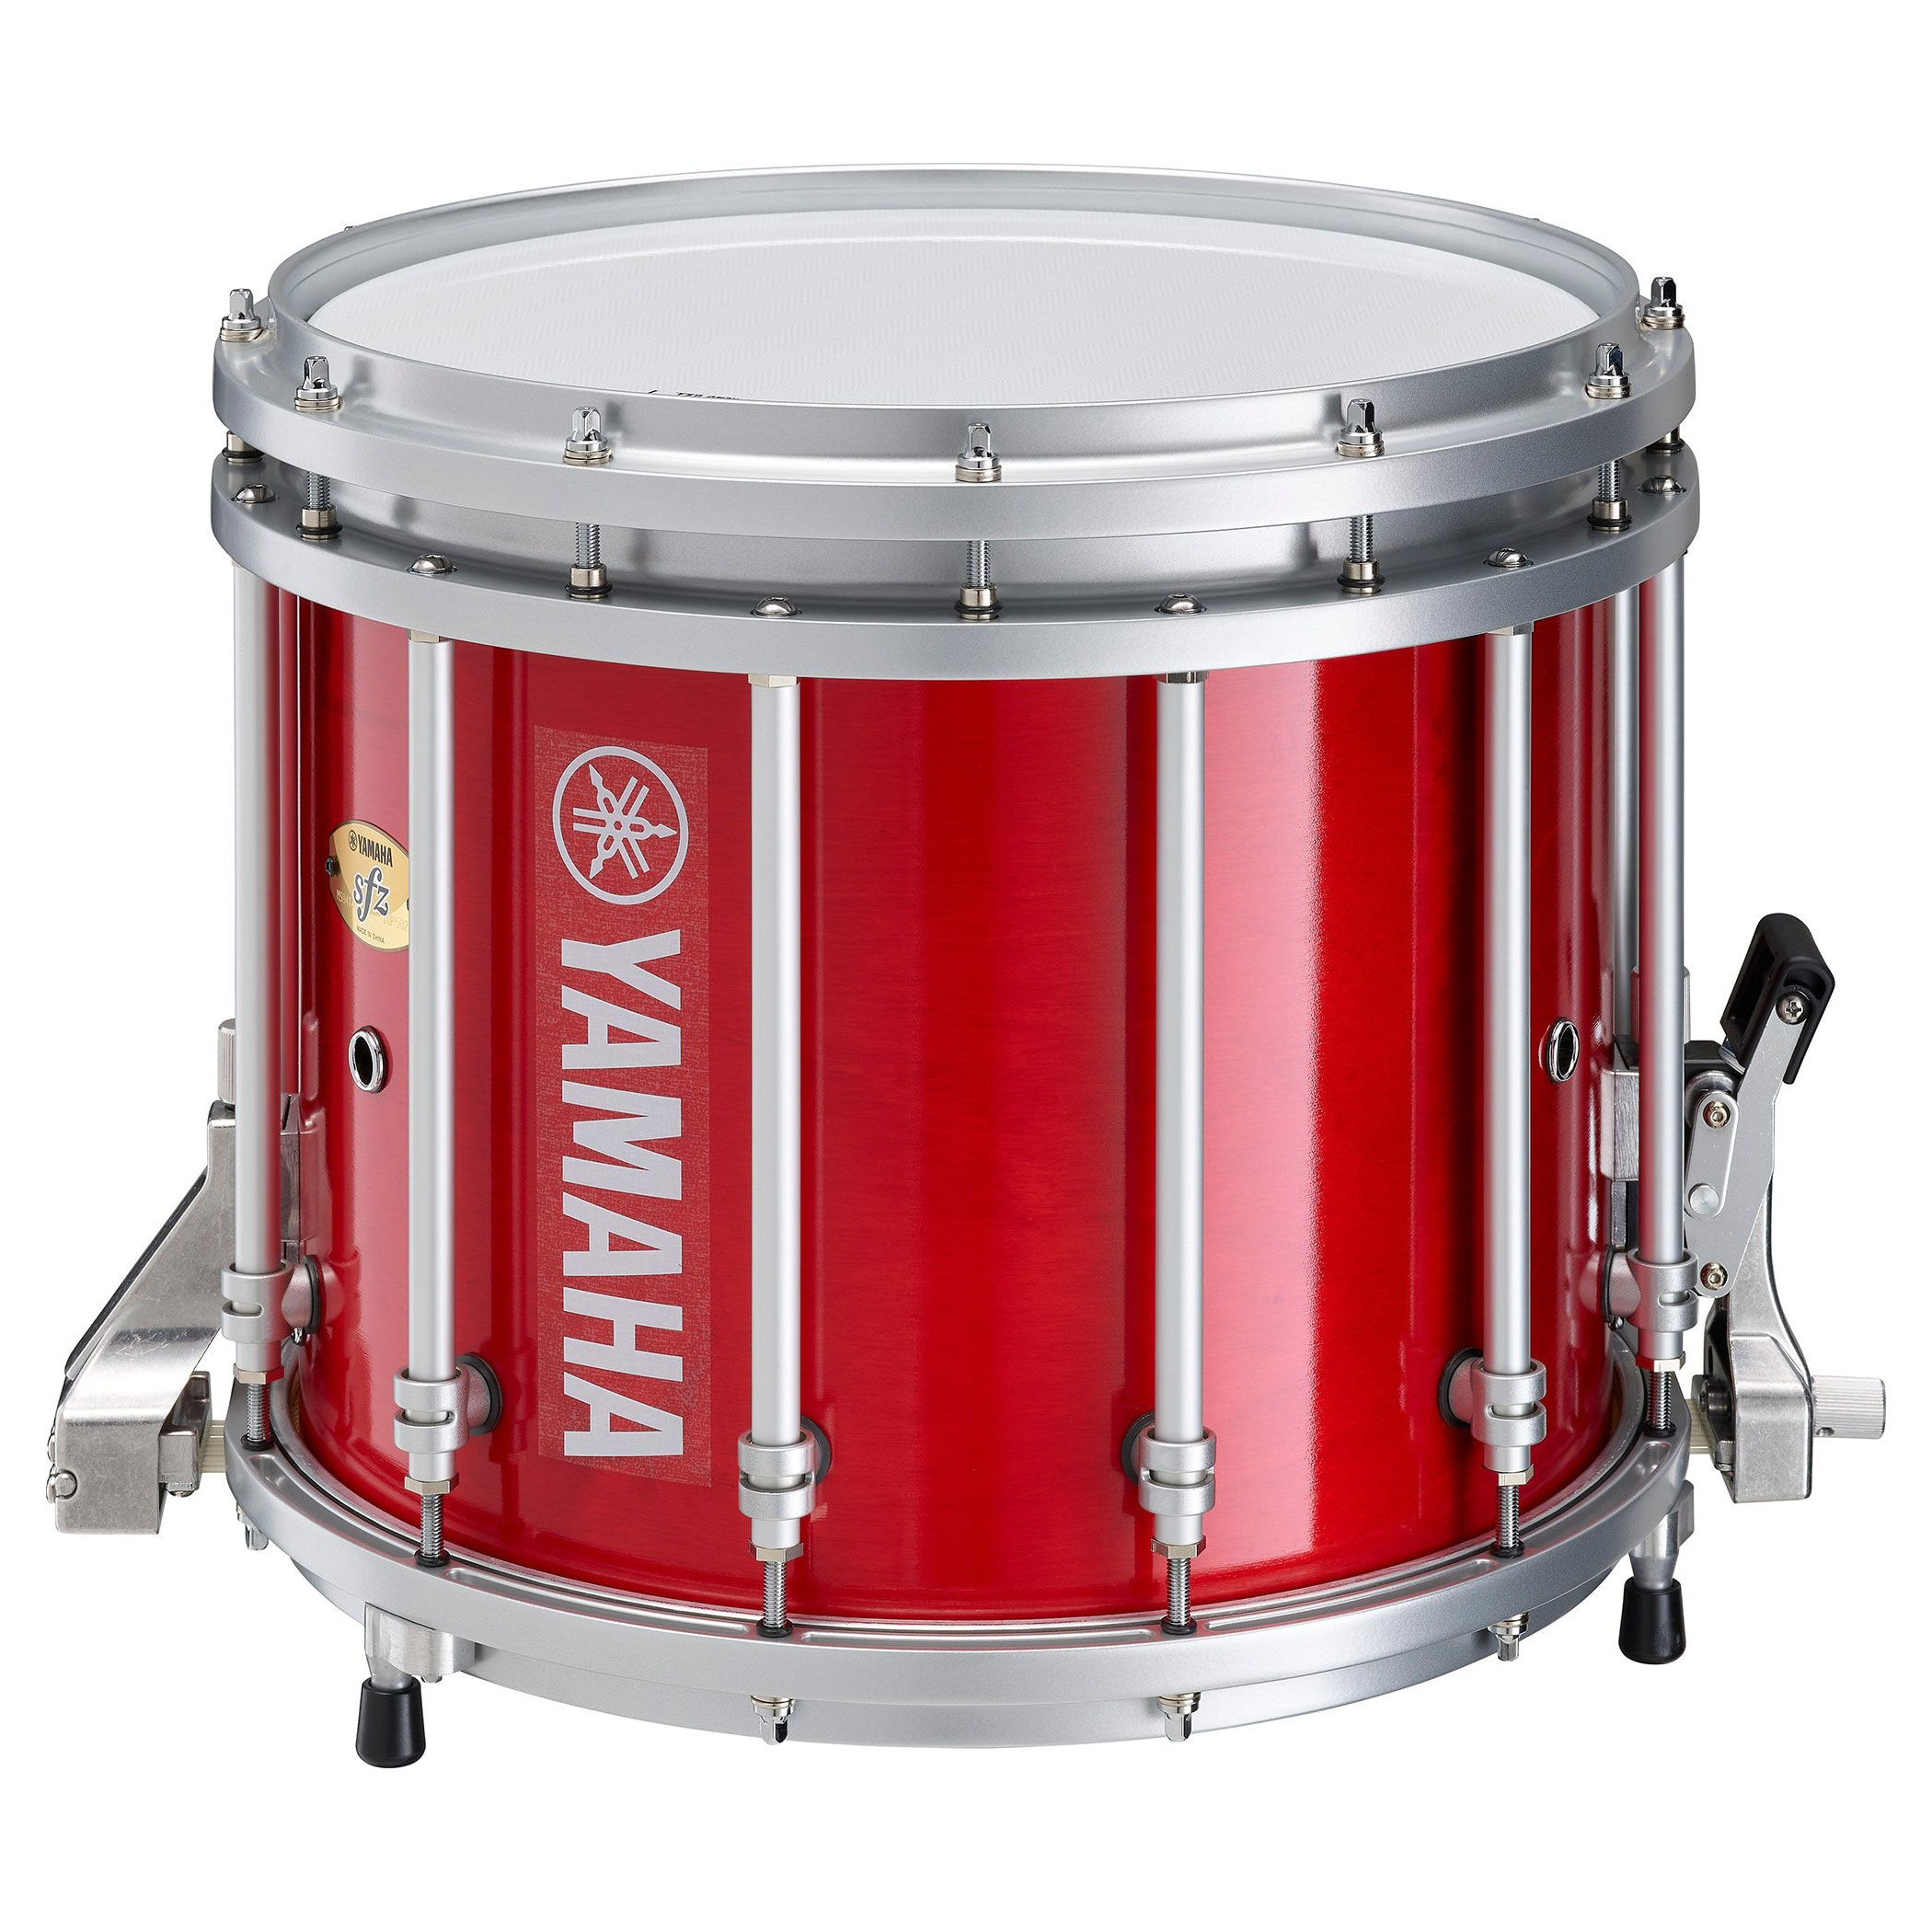 """Yamaha 14"""" x 12"""" 9400 Series SFZ Marching Snare Drum with Standard Hardware"""